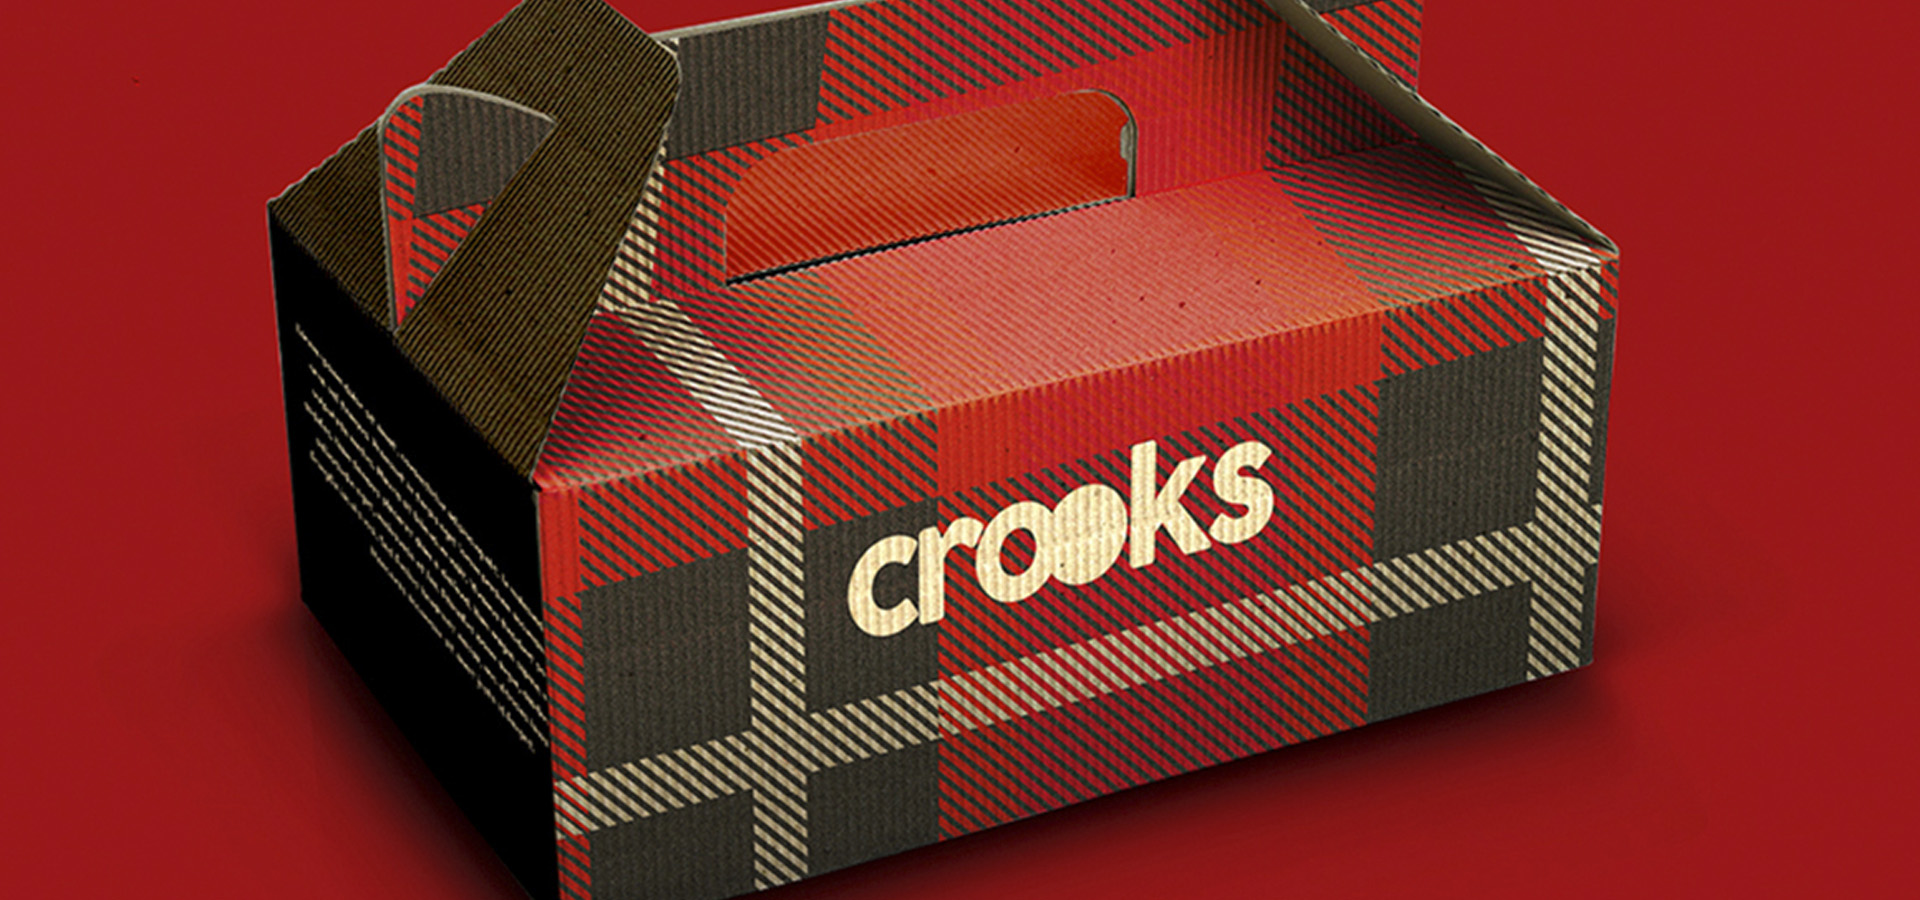 design marca 1516_crooks